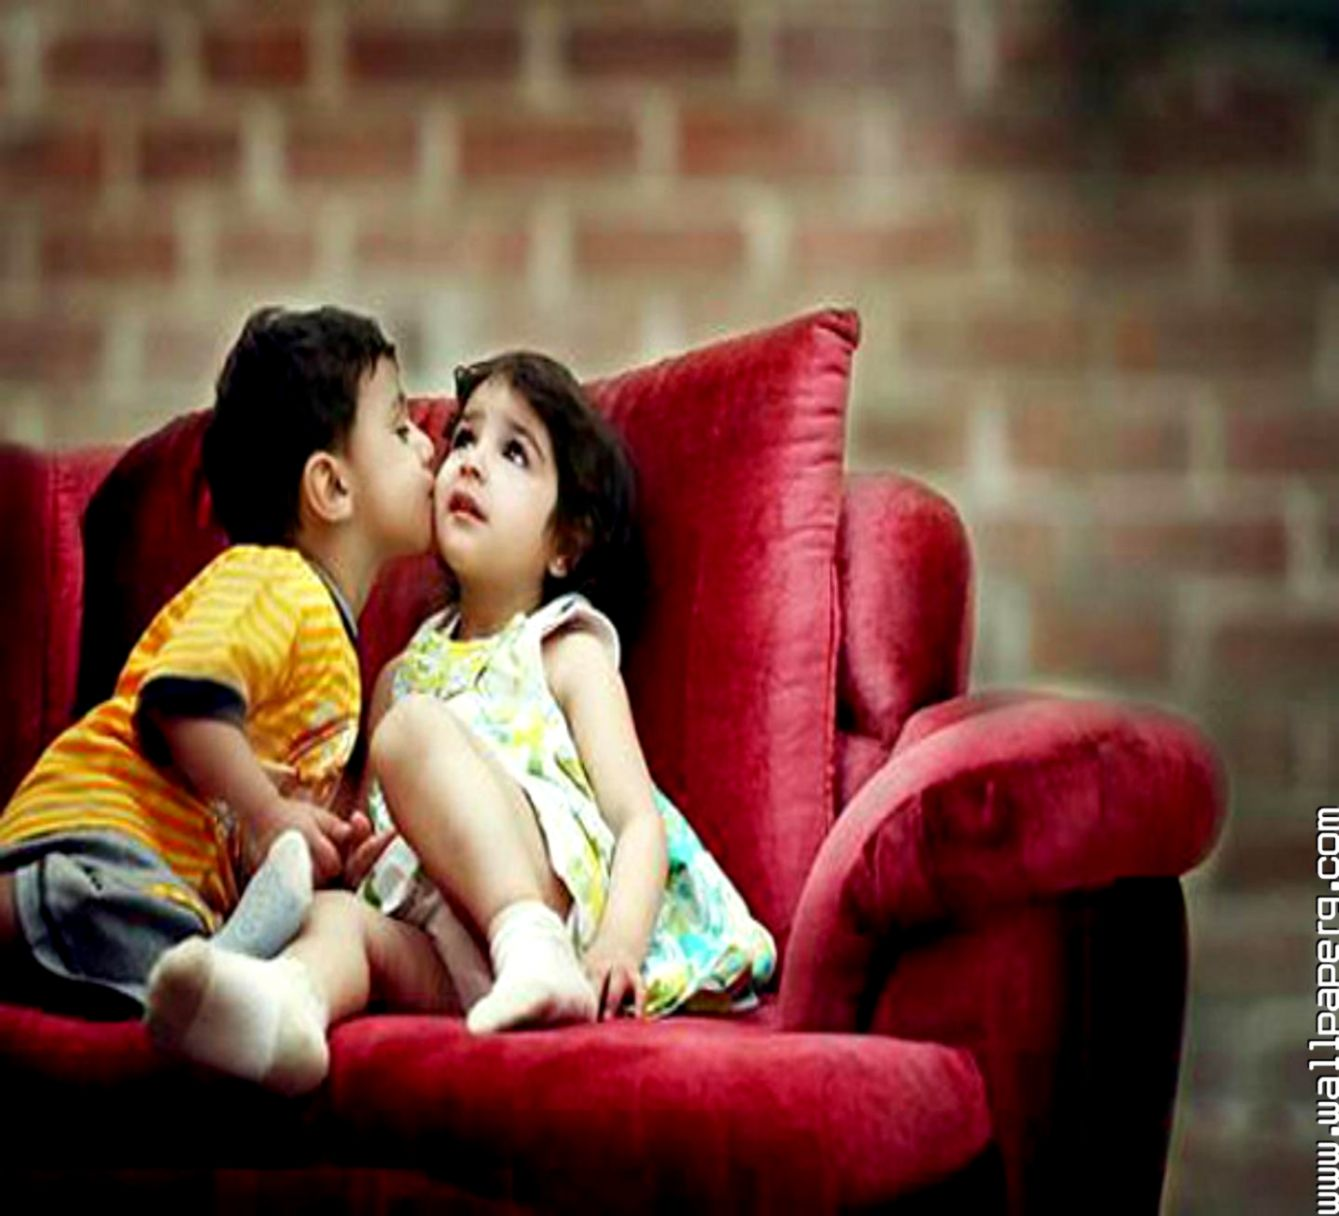 Cute Baby Couple Images Love Kiss Images Hd 841500 Hd Wallpaper Backgrounds Download